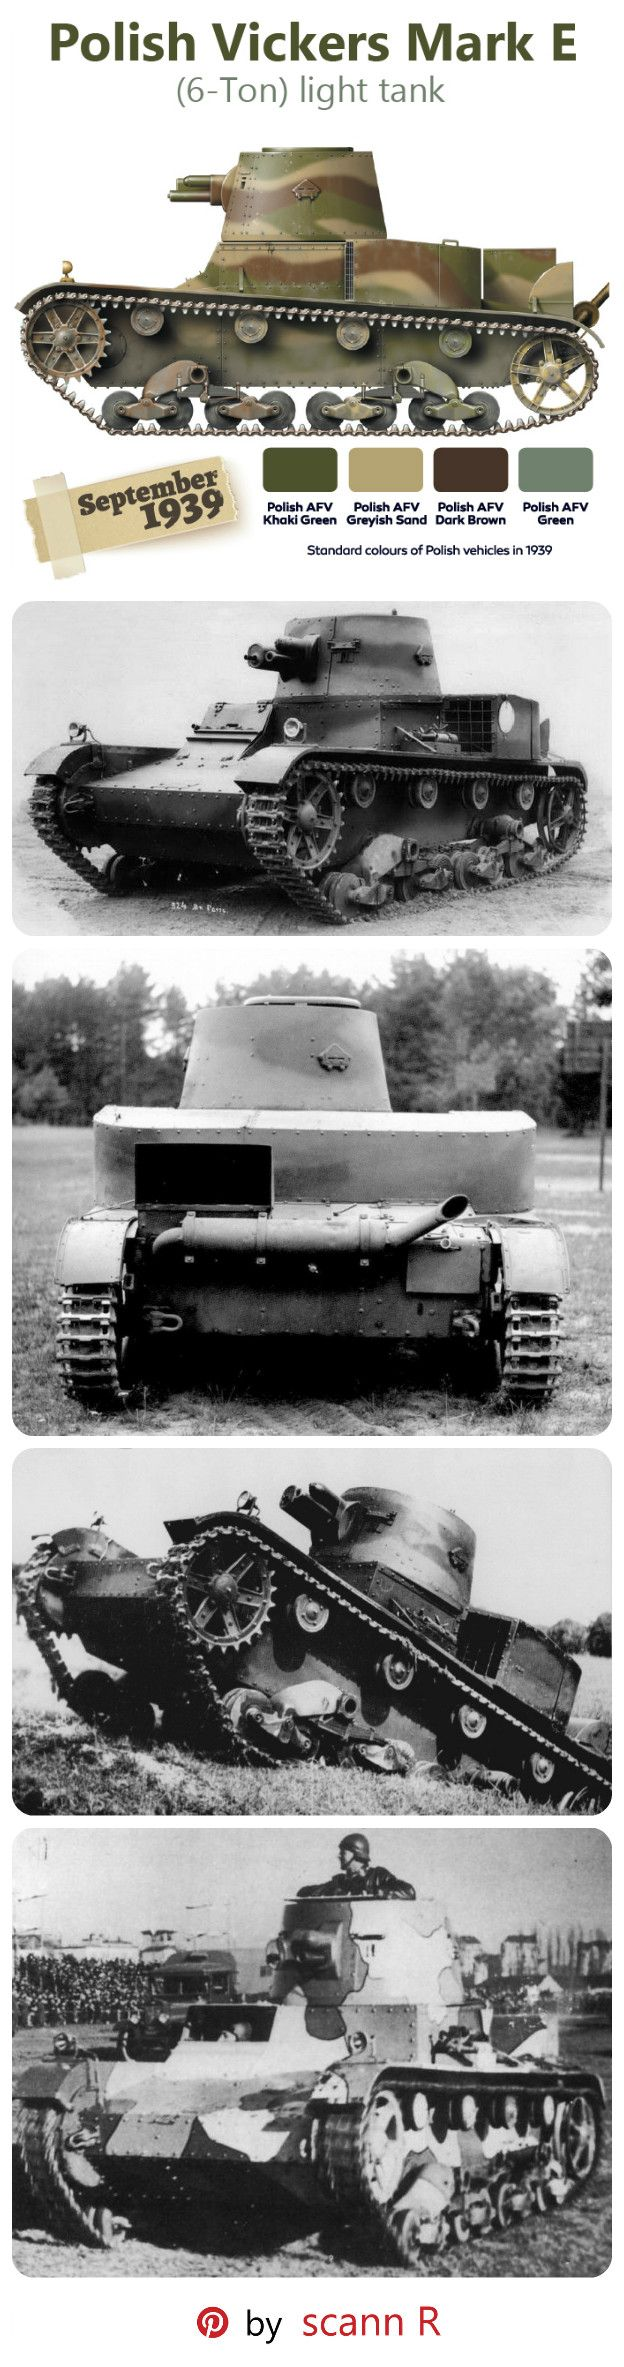 In 1928, Vickers-Armstrongs completed a design of a new, lighter Vickers 6 Ton tank (Mark E). It was to be one of the most significant tank developments, and at that time it was one of the most modern tanks in the world. The first 6-ton tank was tested in Poland in September 1930, On 14 September 1931, Poland bought 38 tanks Vickers Mk.E Type A, with spare parts and a manufacturing licence. Its Polish development was named: VAU-33 (Vickers-Armstrong-Ursus 1933), eventually renamed to 7TP.